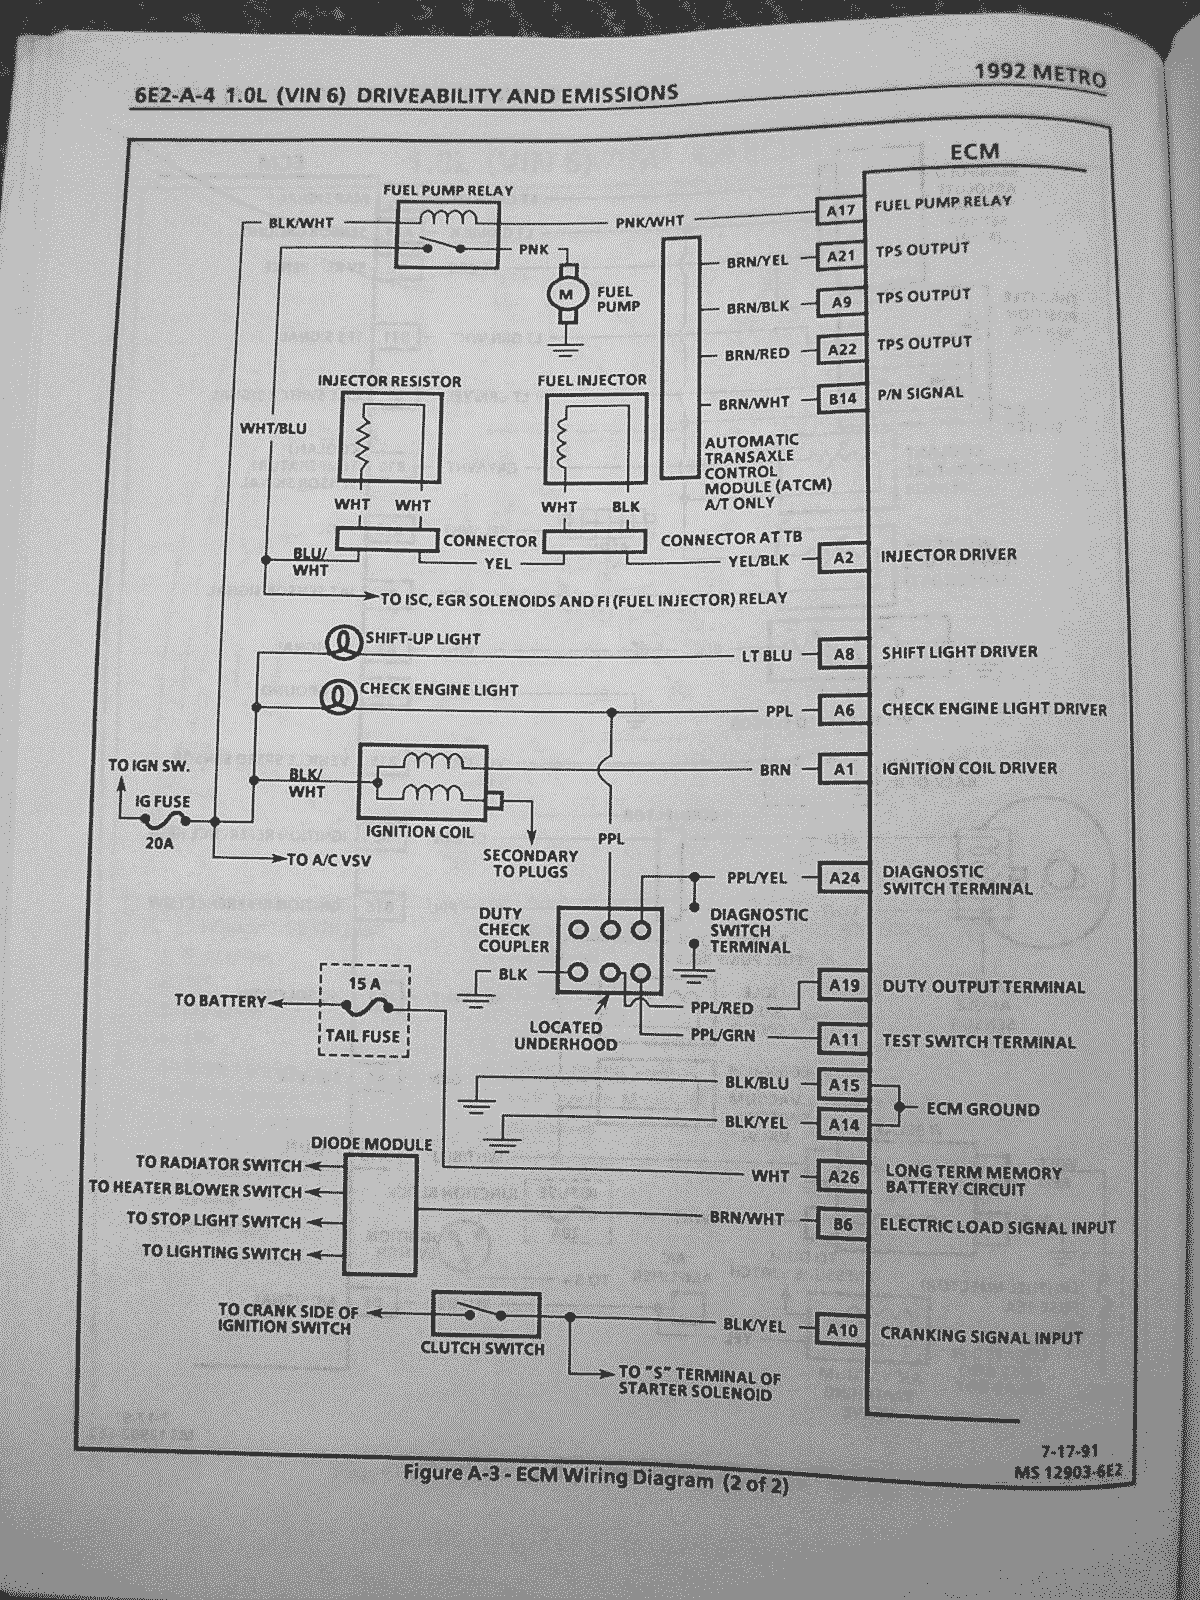 6e2 a 4 geo metro and suzuki swift wiring diagrams metroxfi com 1996 geo metro fuse box diagram at gsmportal.co